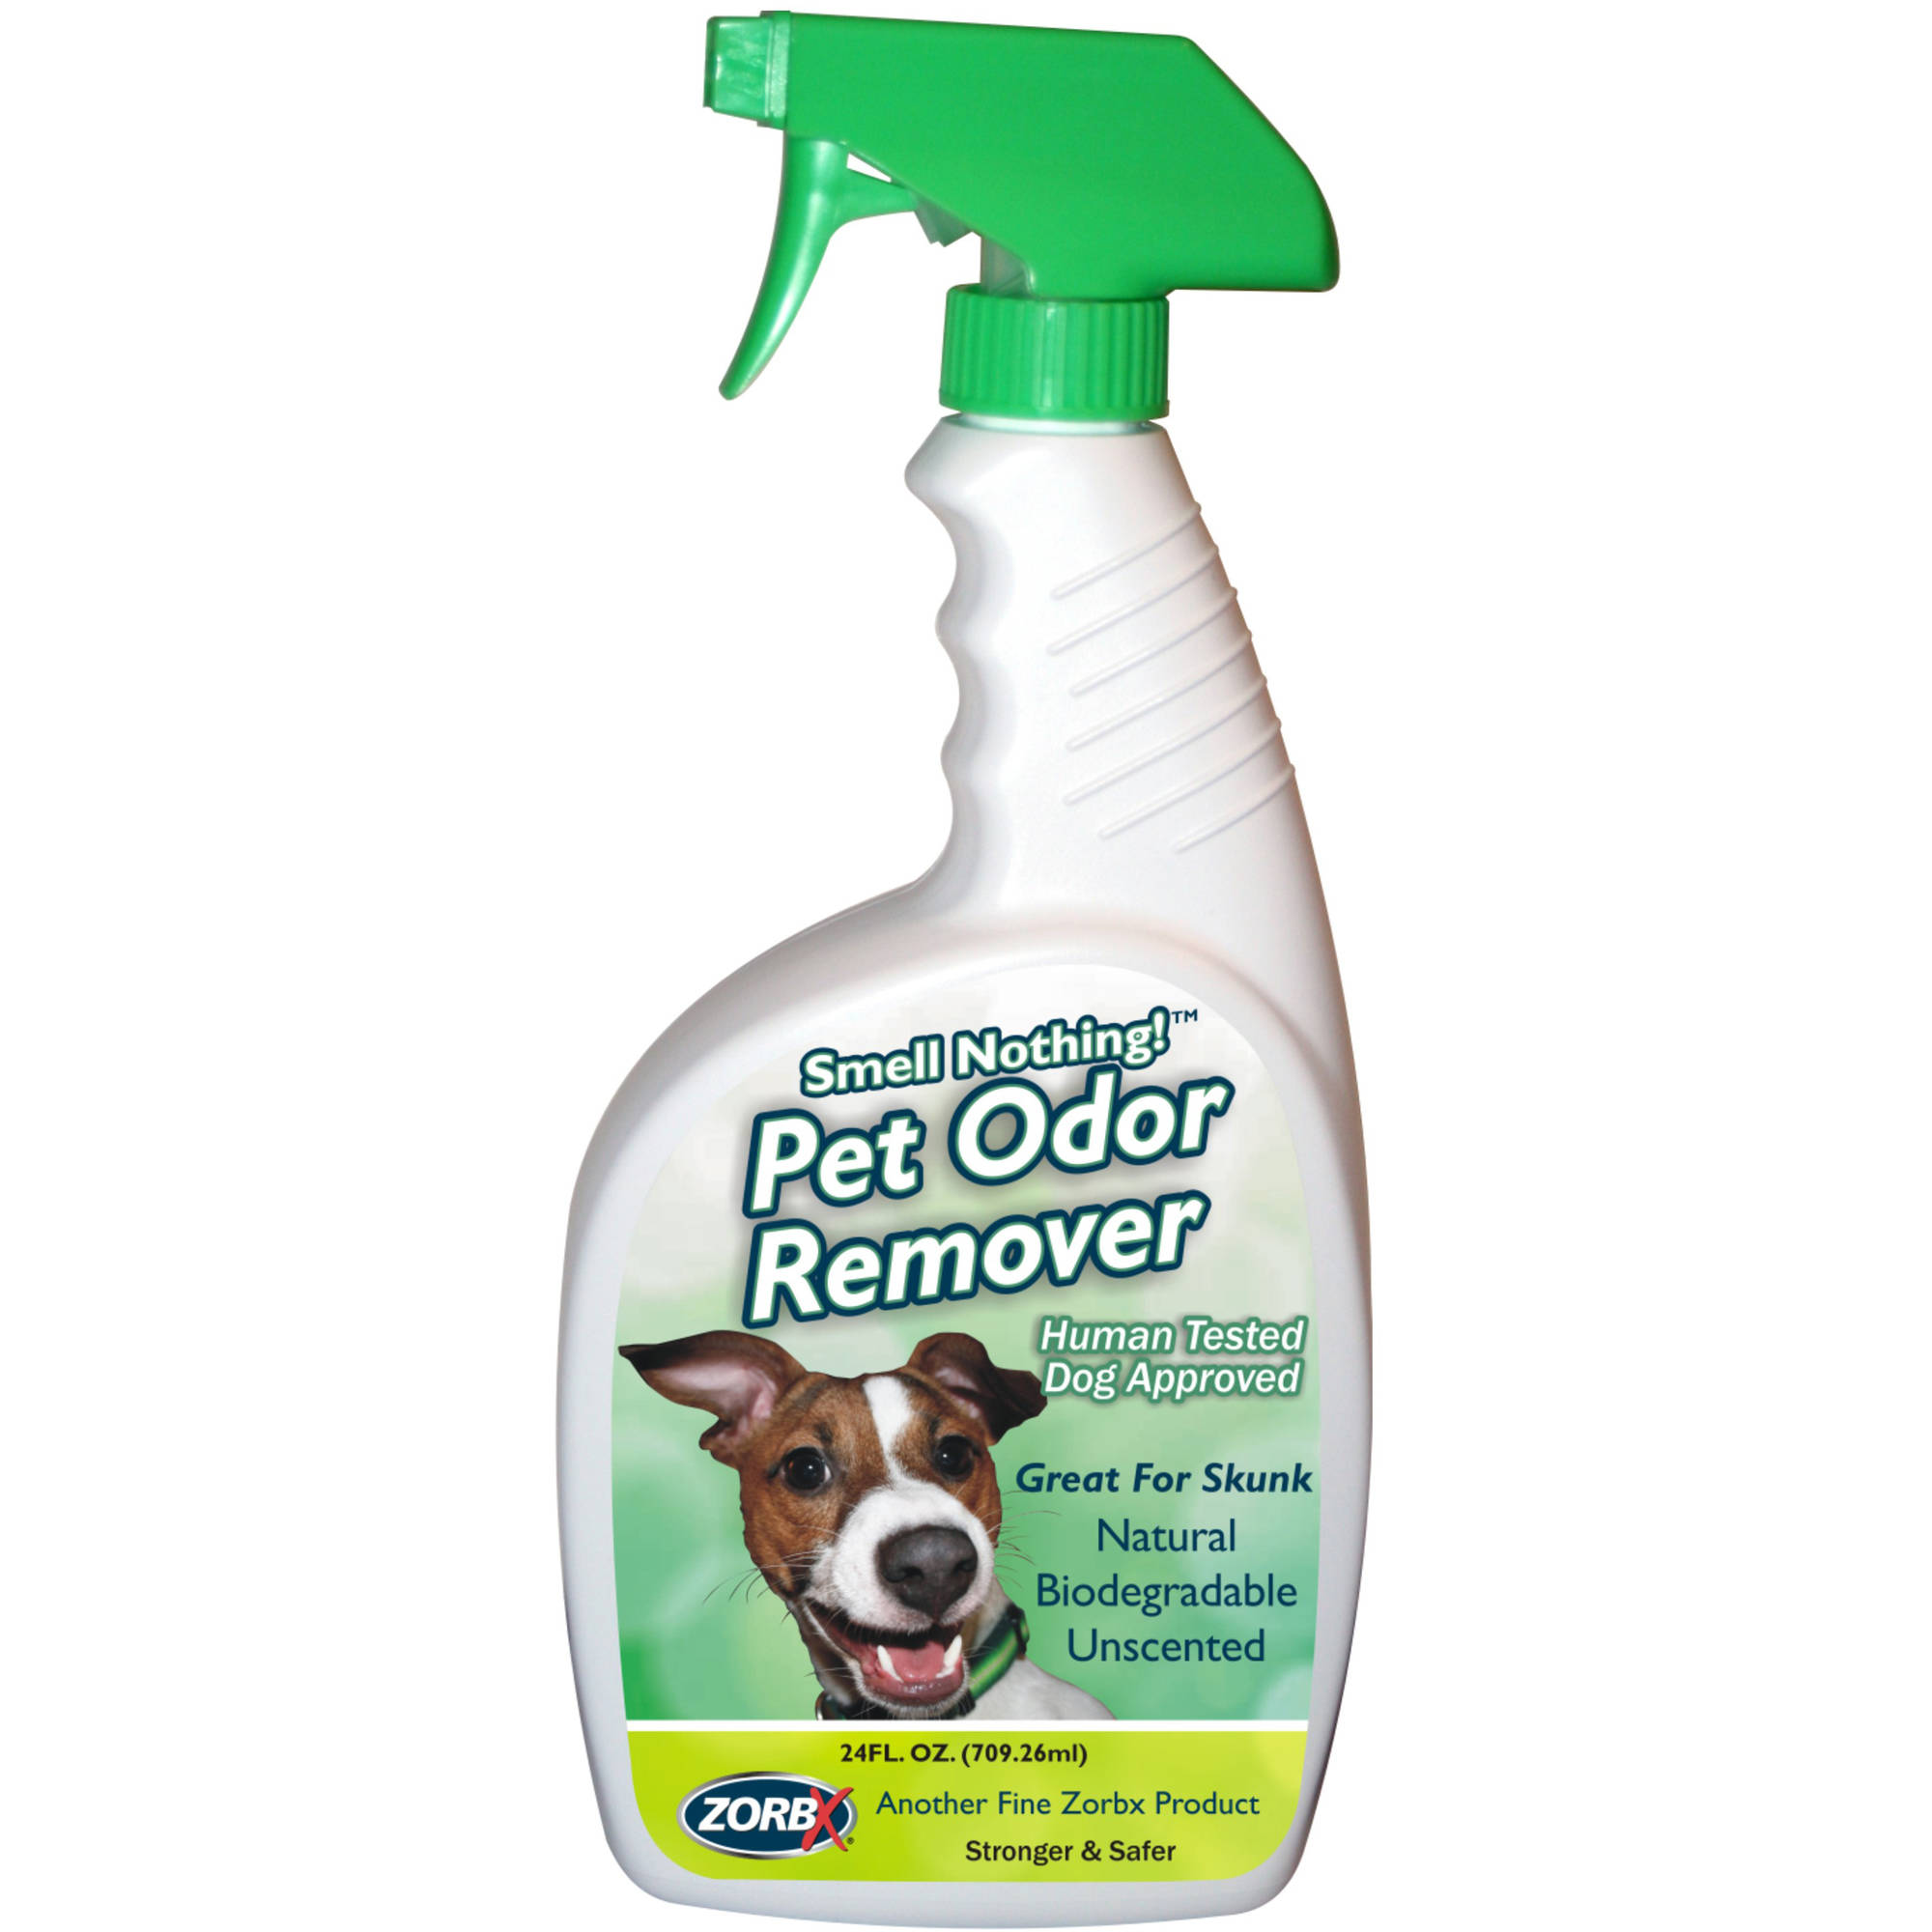 ZORBX Smell Nothing Pet Odor Remover, 24 oz